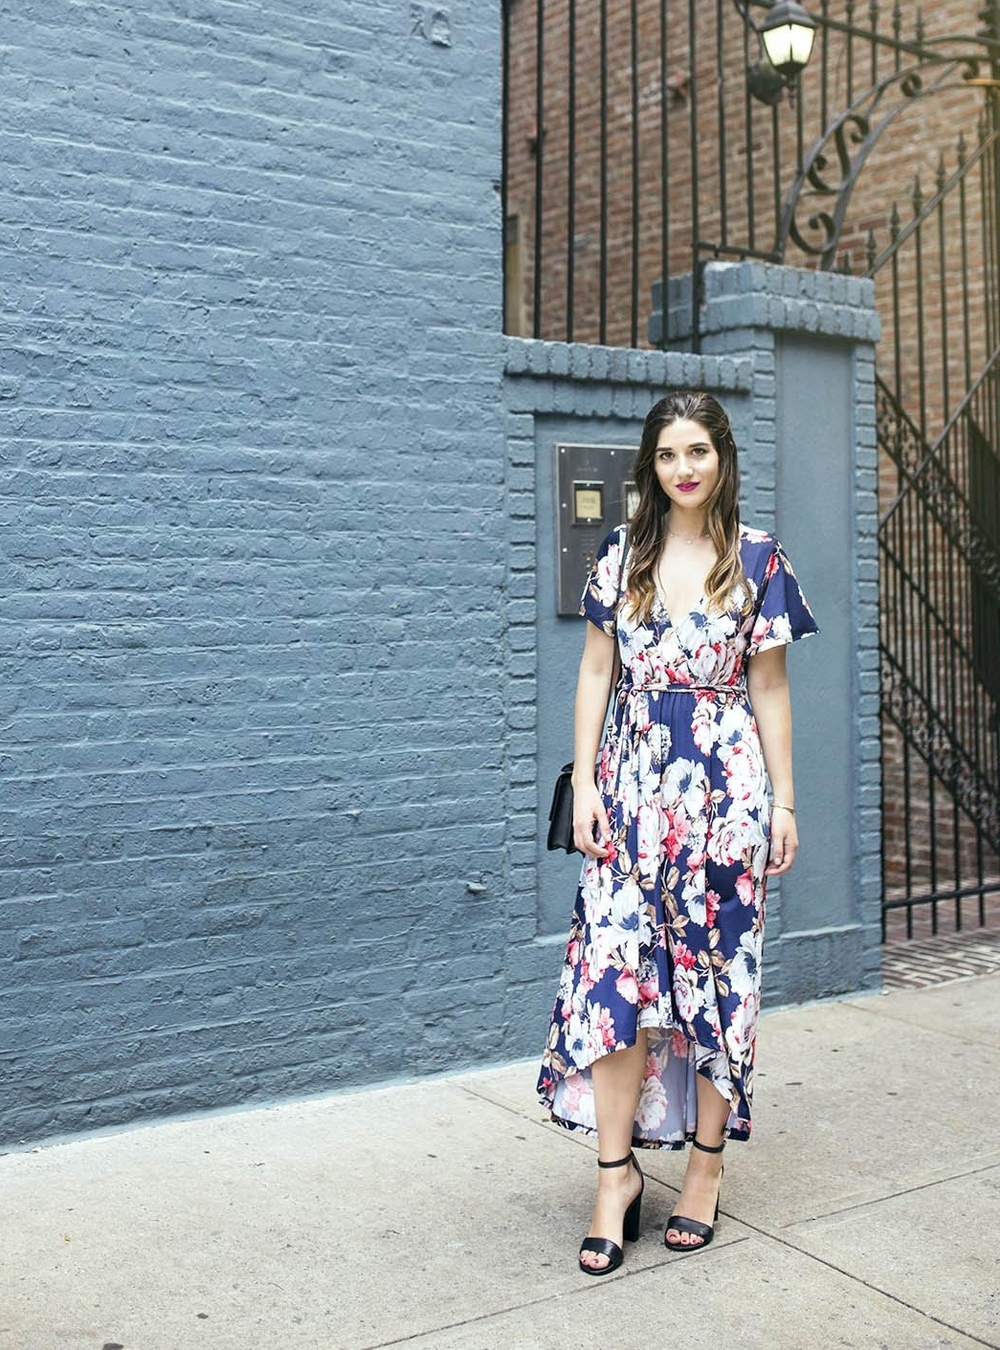 Long Floral Wrap Dress West Kei Louboutins & Love Fashion Blog Esther Santer NYC Street Style Blogger Outfit OOTD Trendy Henri Bendel Amare Jewels Ivanka Trump Black Klover Sandals Floral Dress Chic Woman Red Lip Pink Hair Brown Wavey Purple Dress .jpg